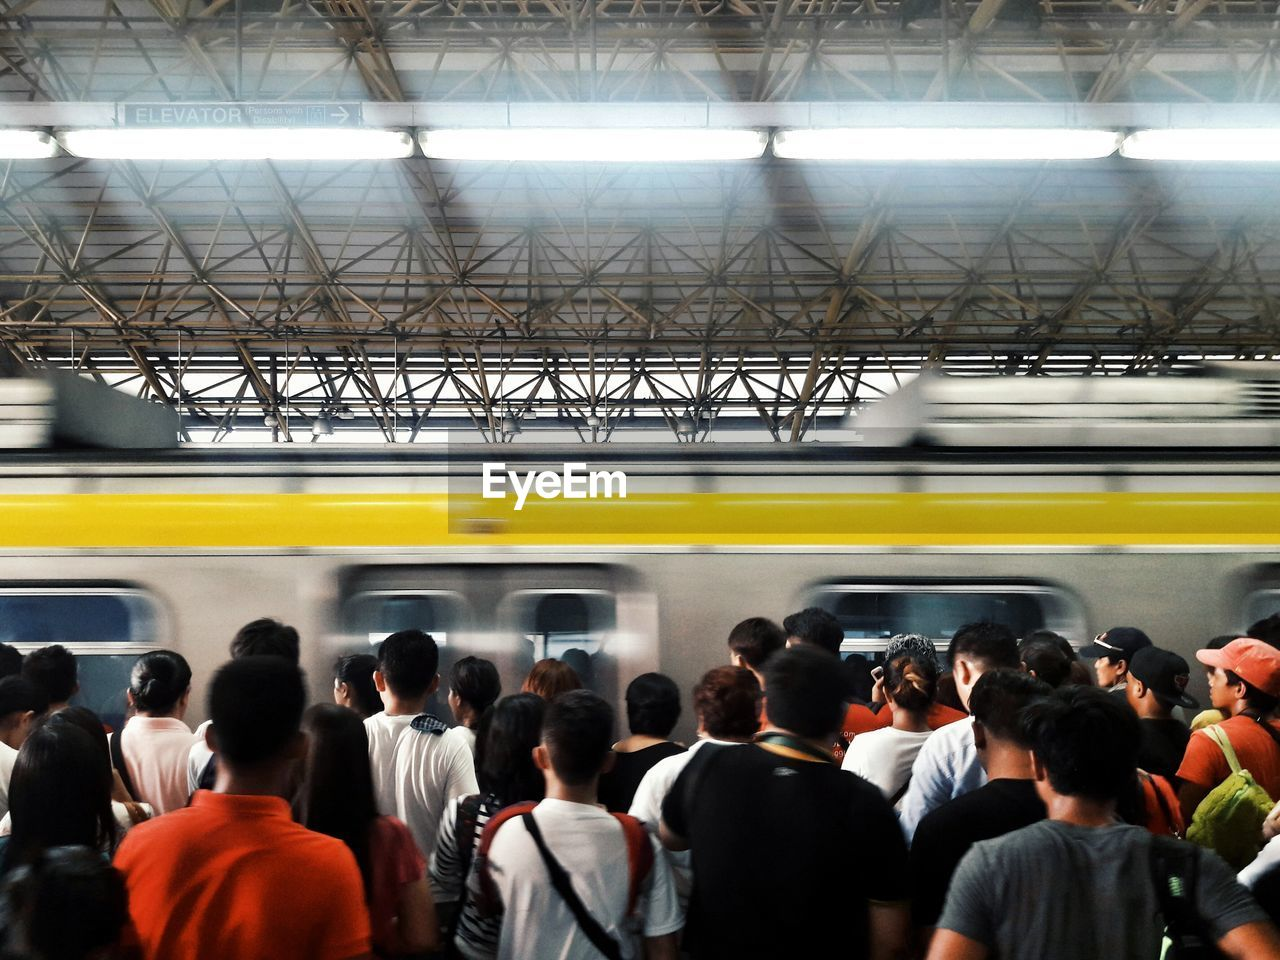 crowd, group of people, large group of people, rail transportation, transportation, public transportation, train, men, mode of transportation, real people, train - vehicle, architecture, railroad station platform, travel, motion, blurred motion, women, indoors, subway train, waiting, ceiling